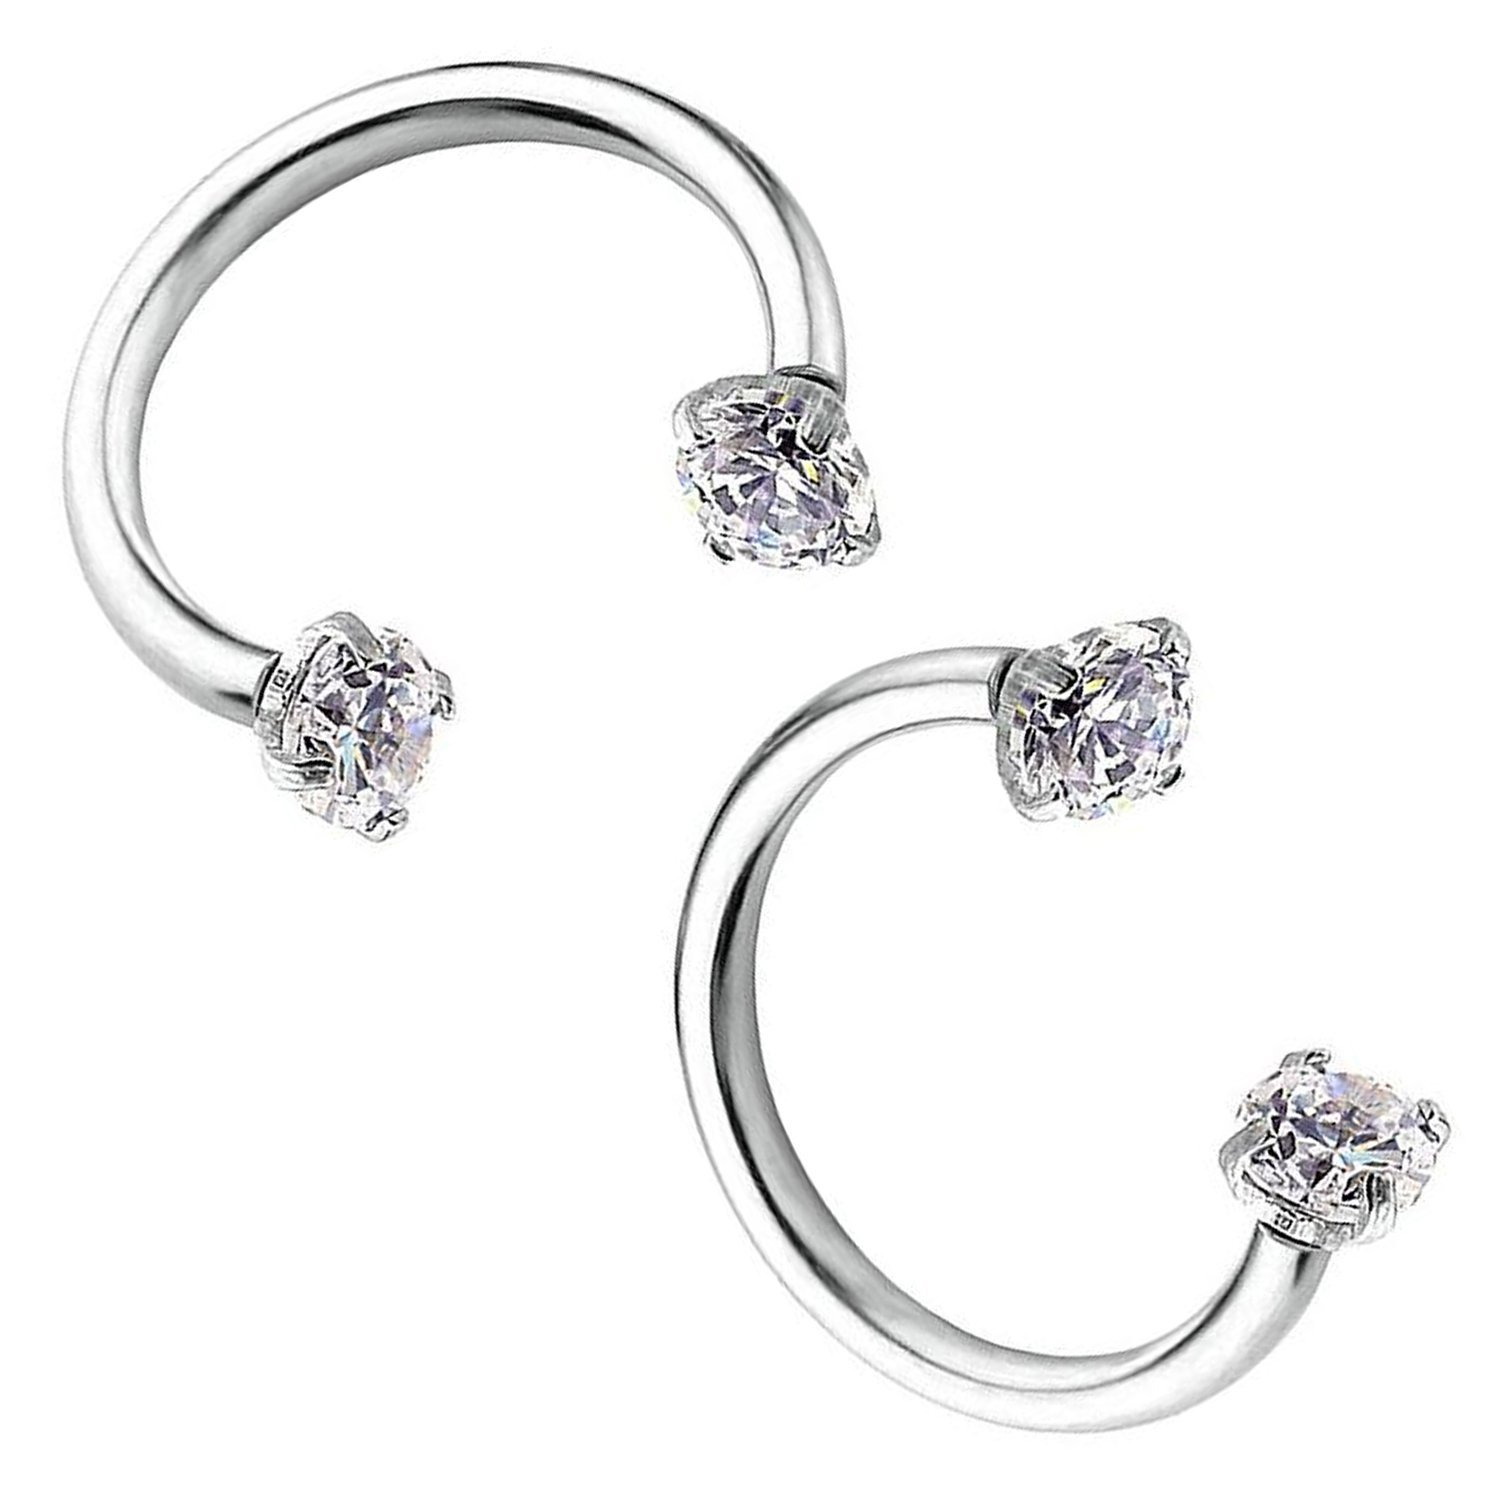 4f891c9e8 Pair of 16g Stainless Steel Round Cubic Zirconia Helix Cartilage Tragus Ear  Lobe Barbell Stud Earrings